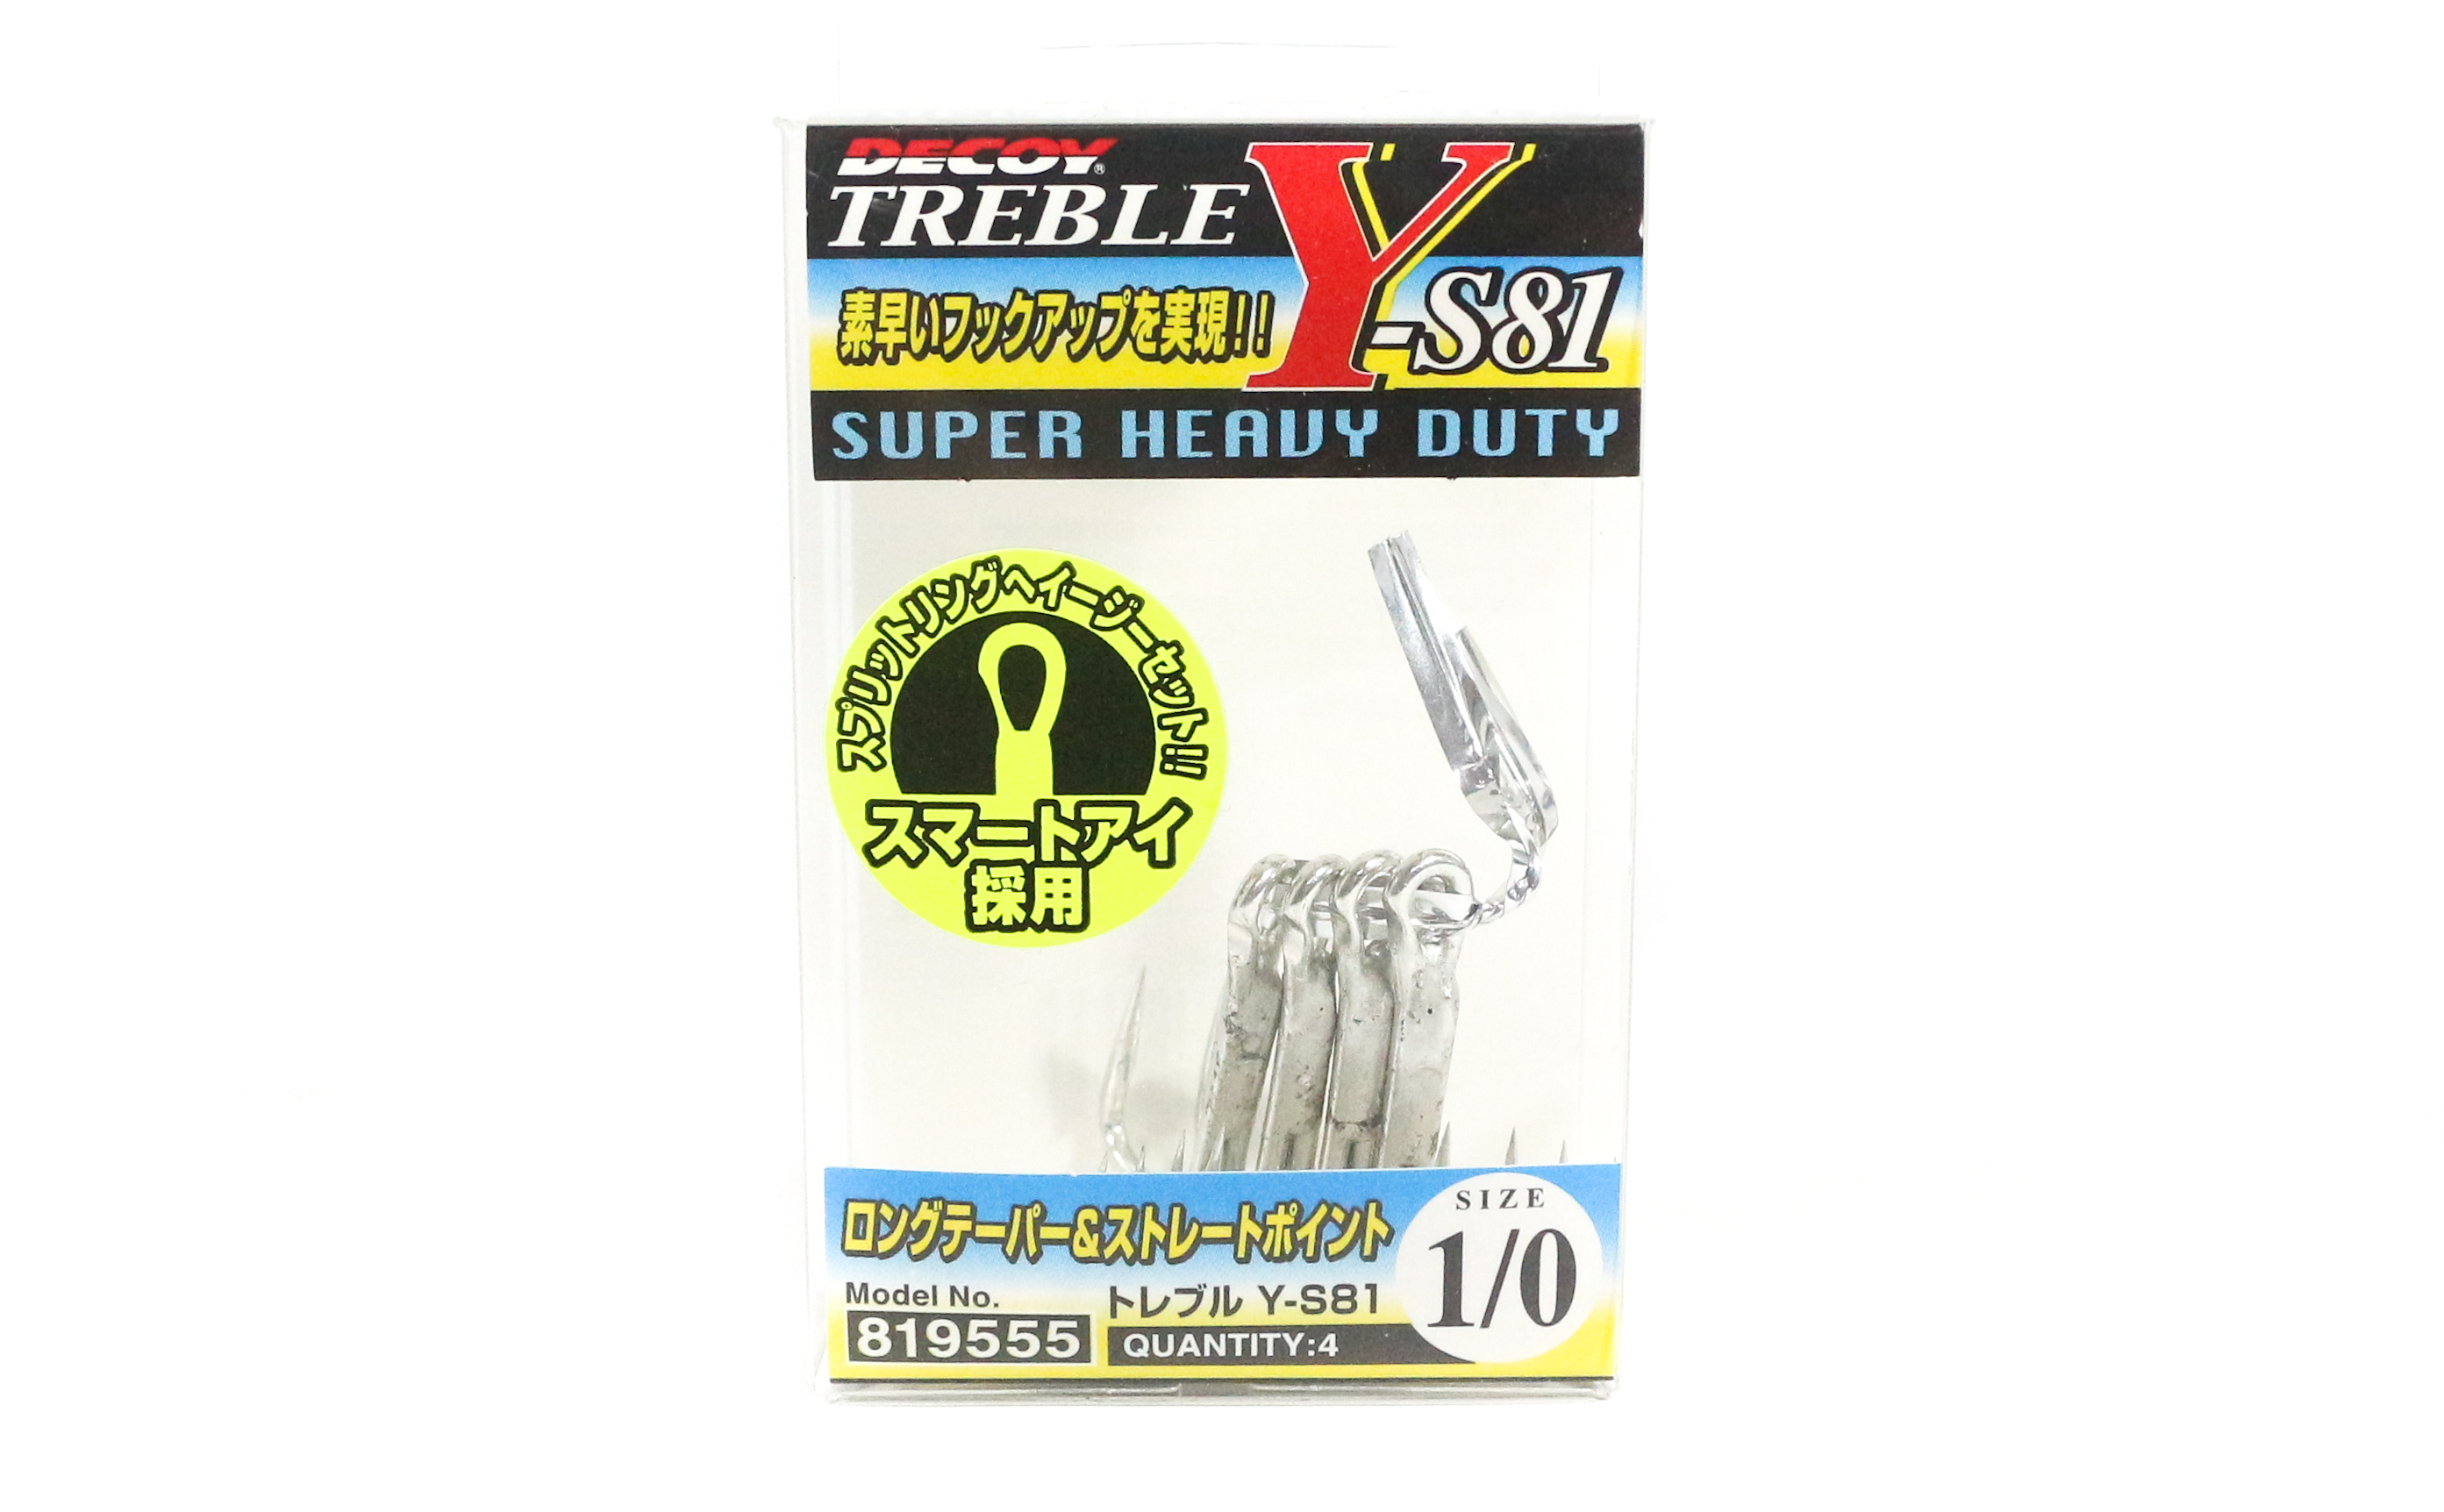 Decoy Y-S81 Treble Hook Heavy Duty Treble Hooks Size 1/0 (9555)